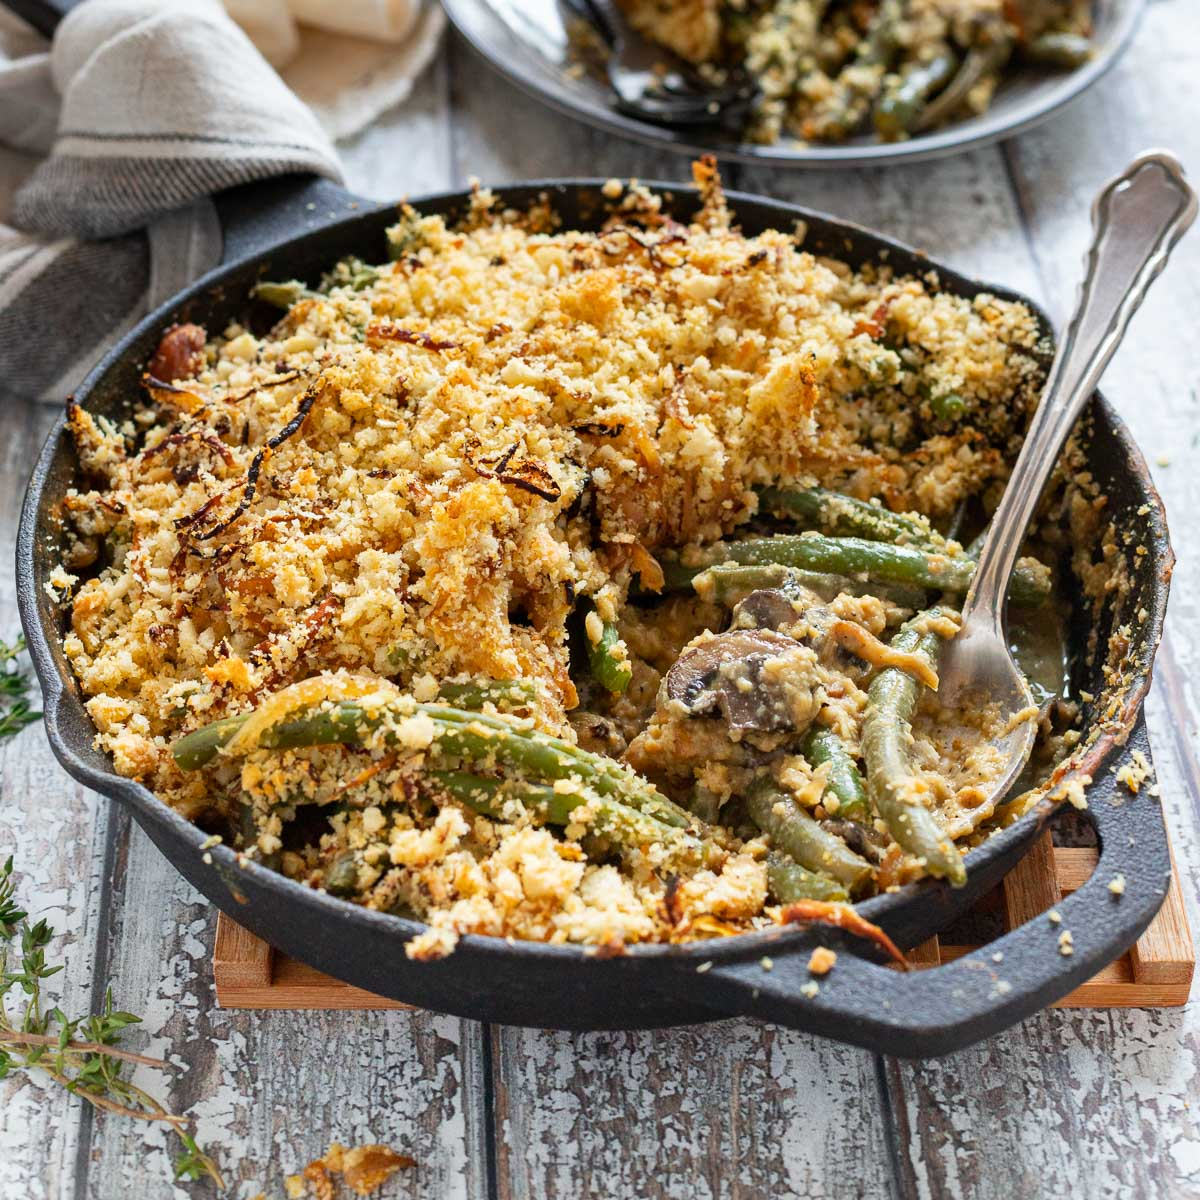 a skillet full of green bean casserole with a spoon in it